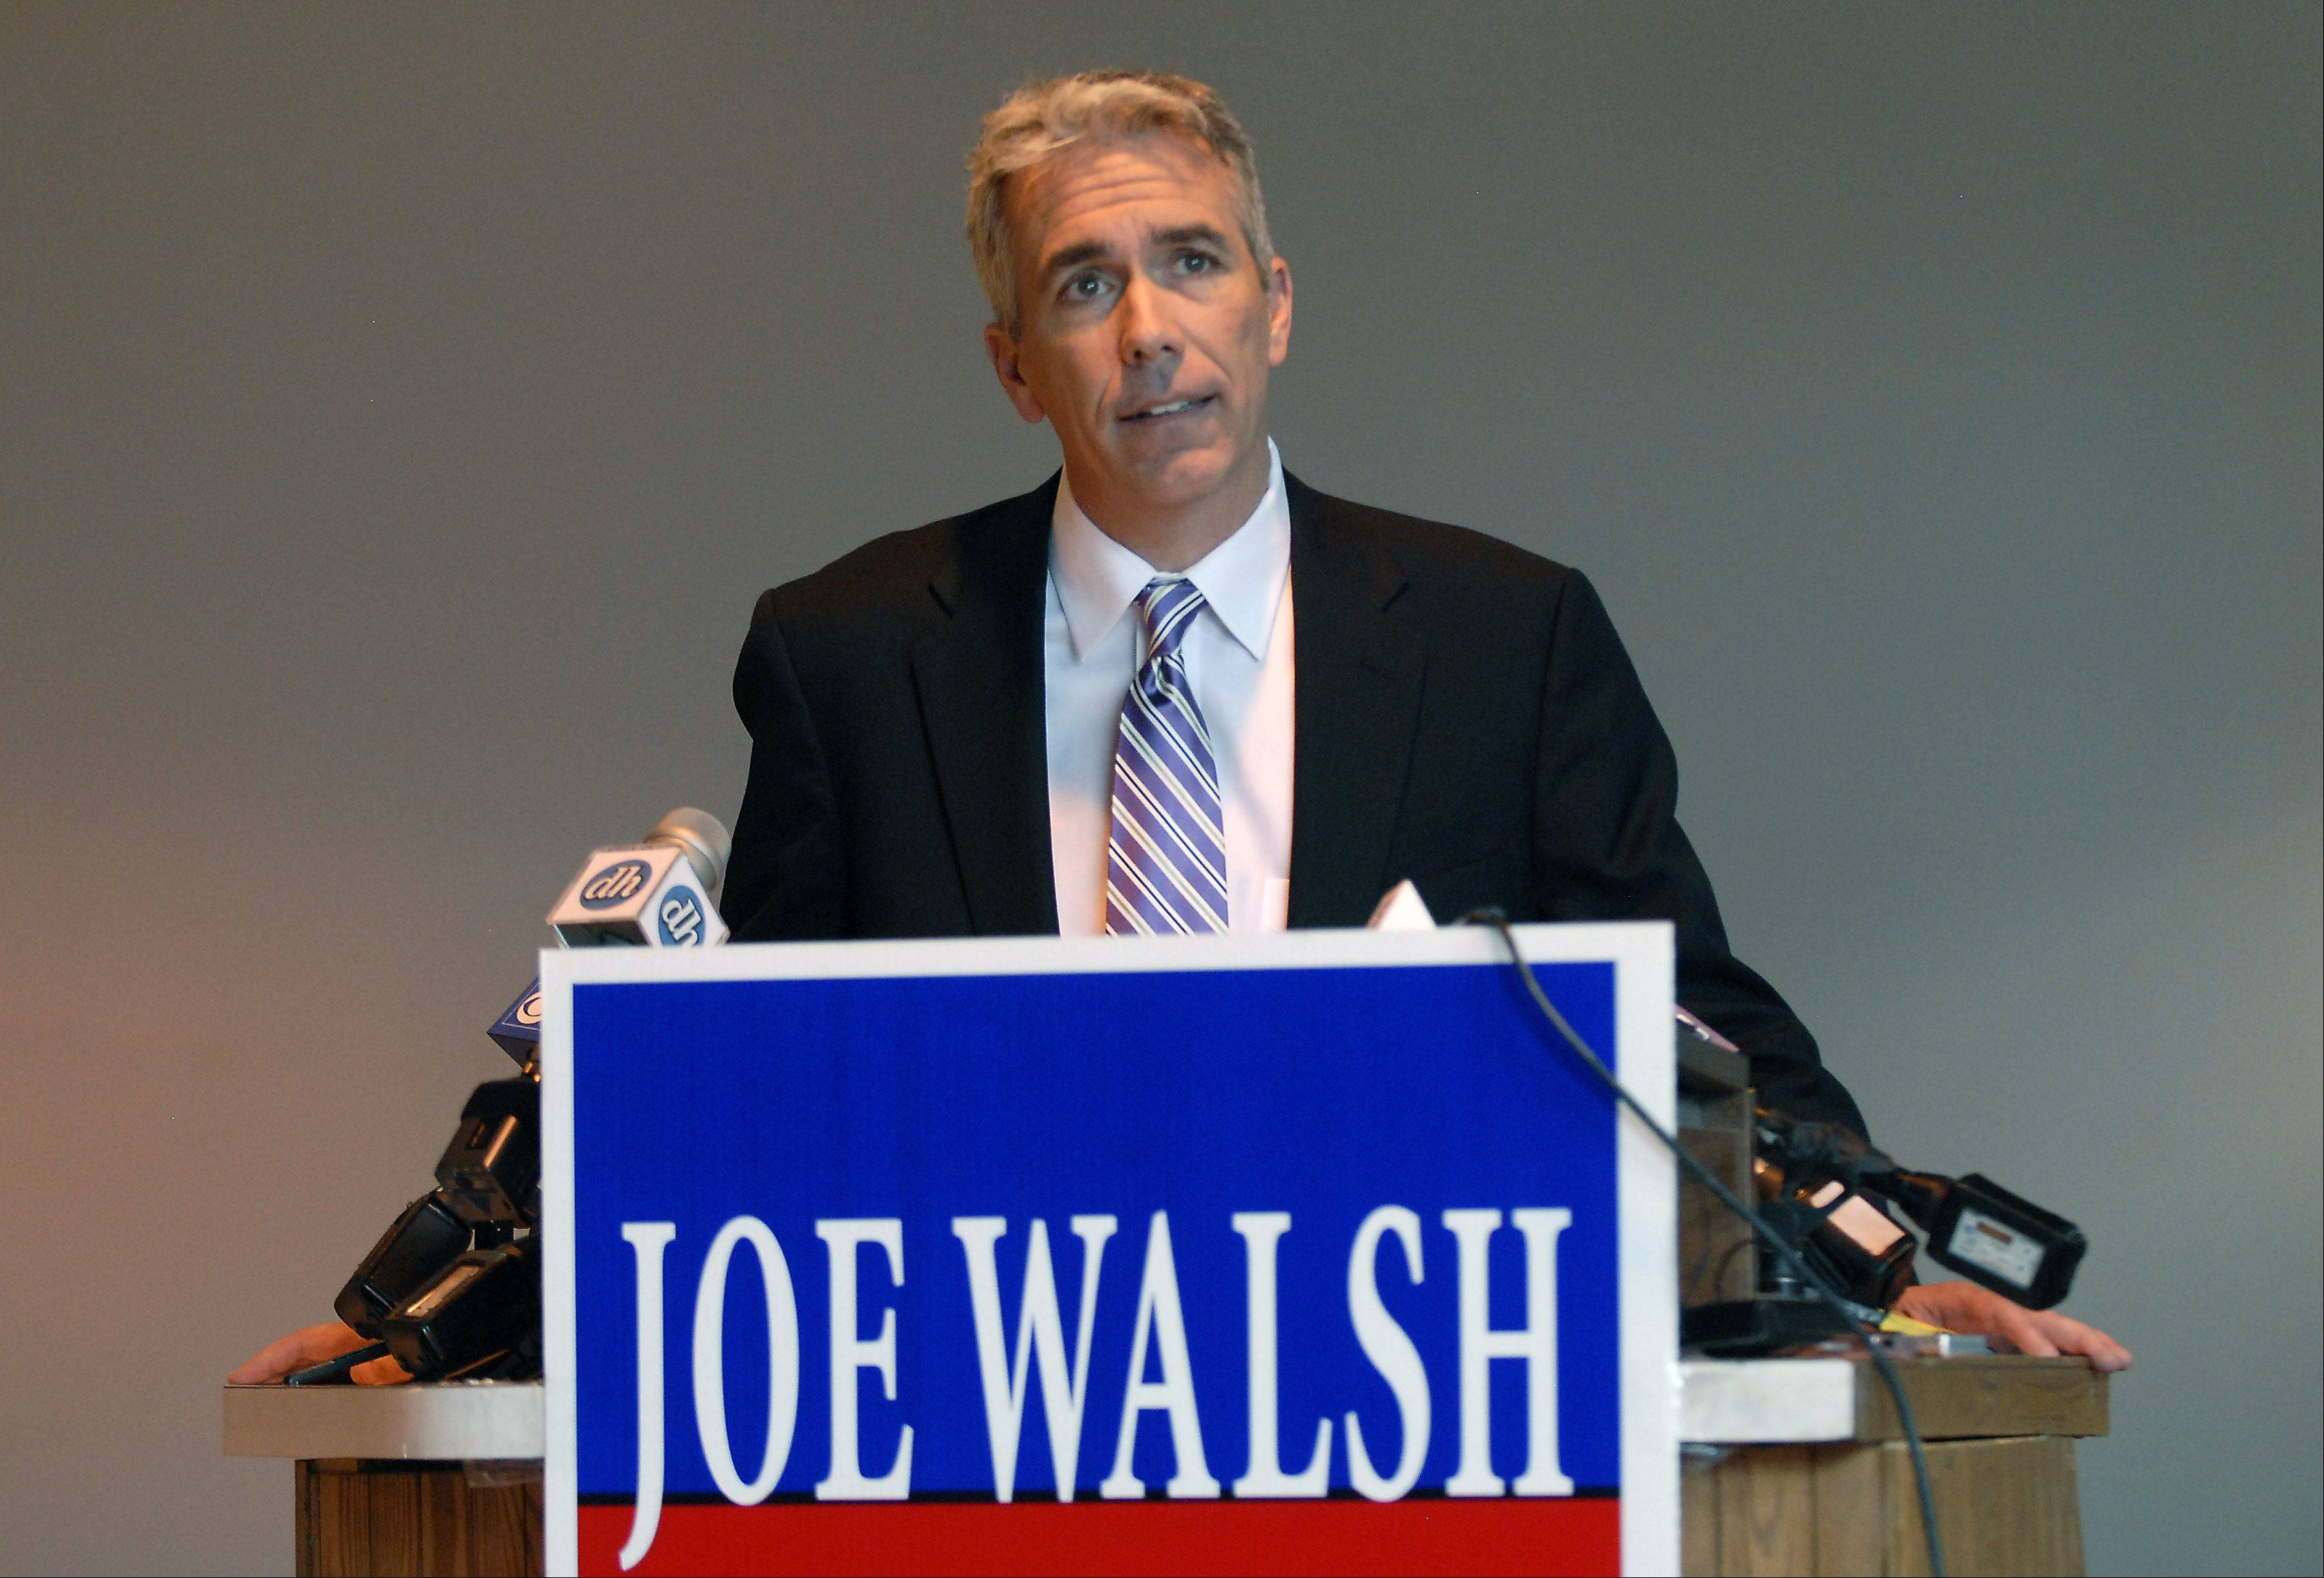 Congressman Joe Walsh, a McHenry Republican